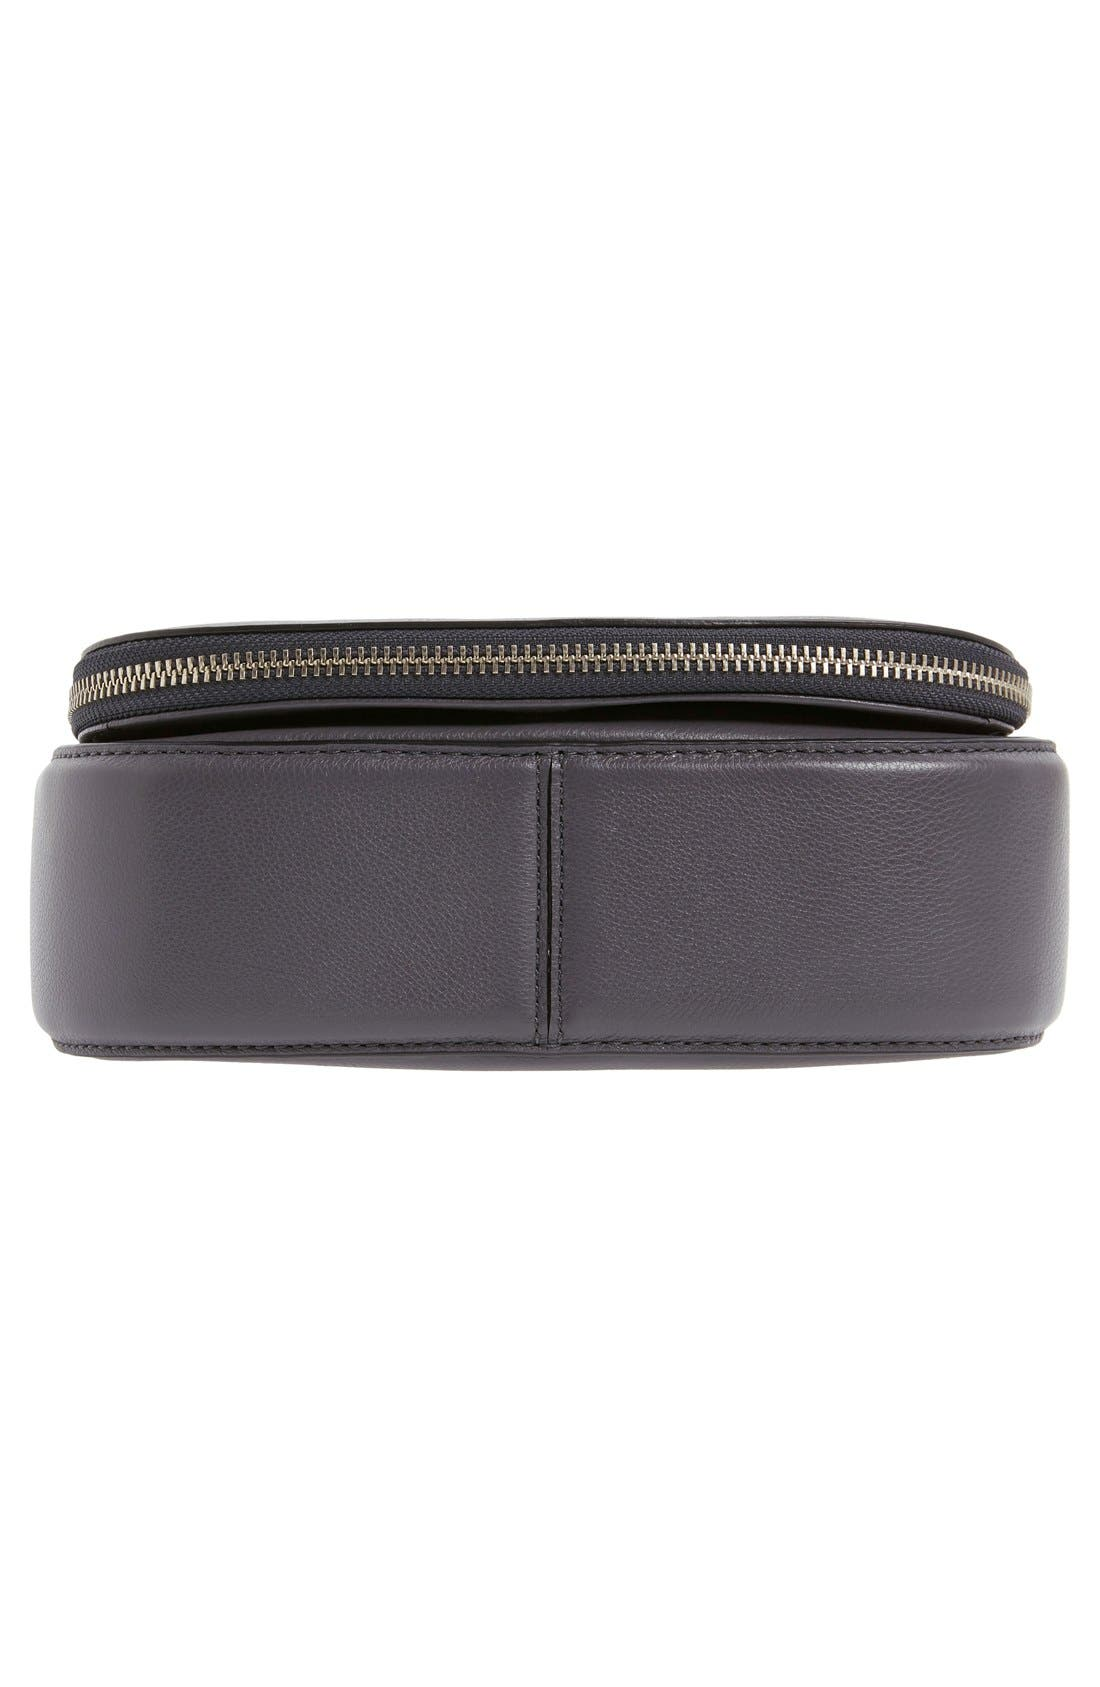 Small Recruit Nomad Pebbled Leather Crossbody Bag,                             Alternate thumbnail 82, color,